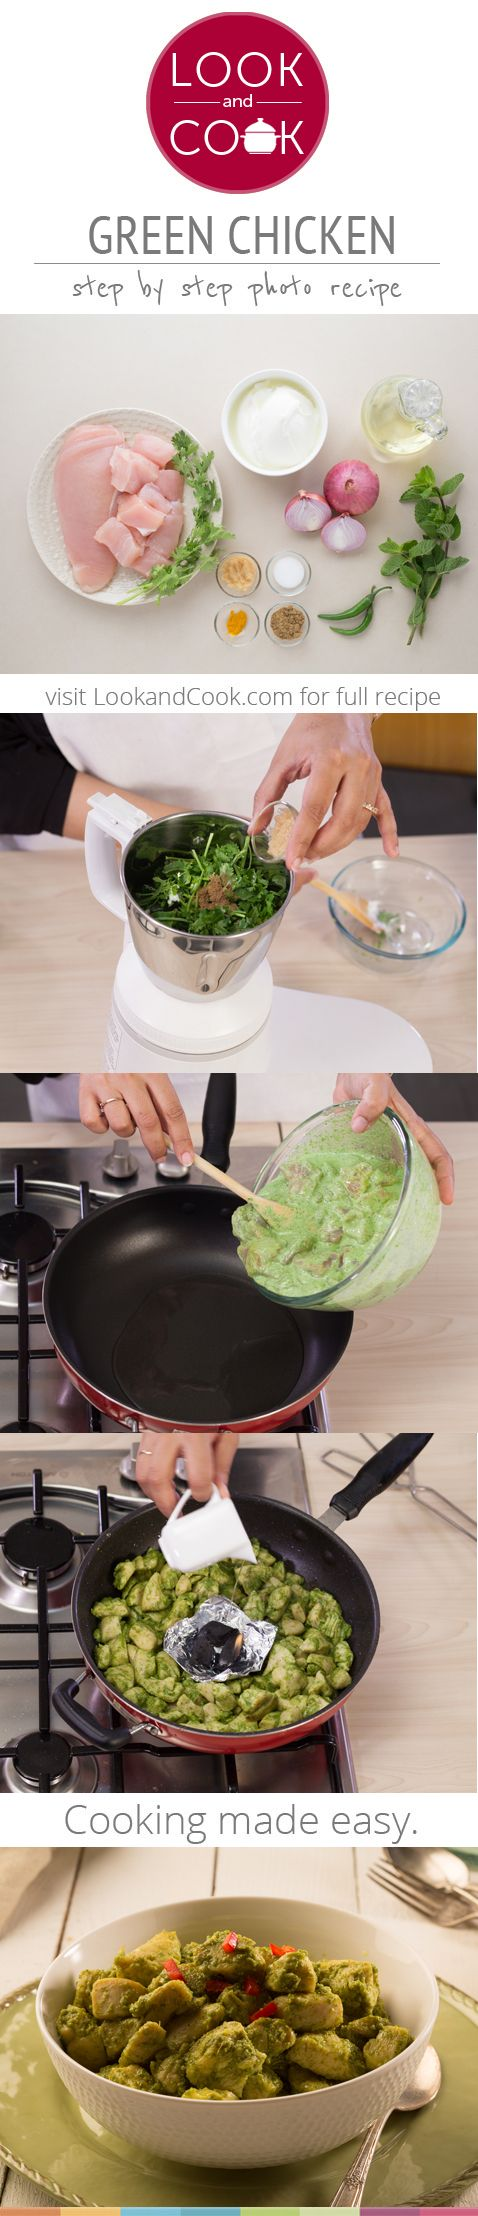 Green Chicken Recipe (#LC14171):